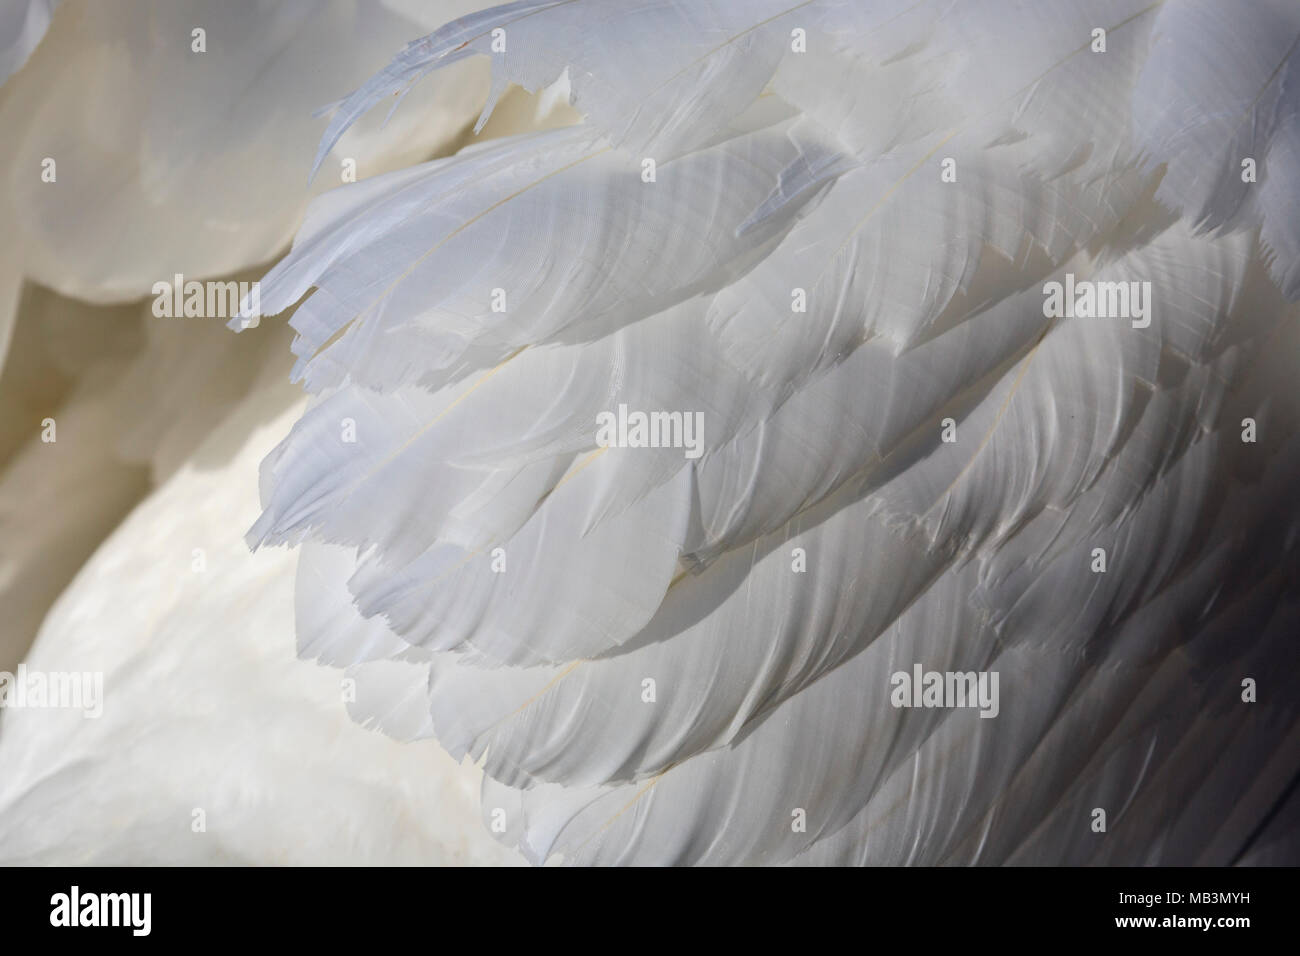 White Swan Feathers - Stock Image